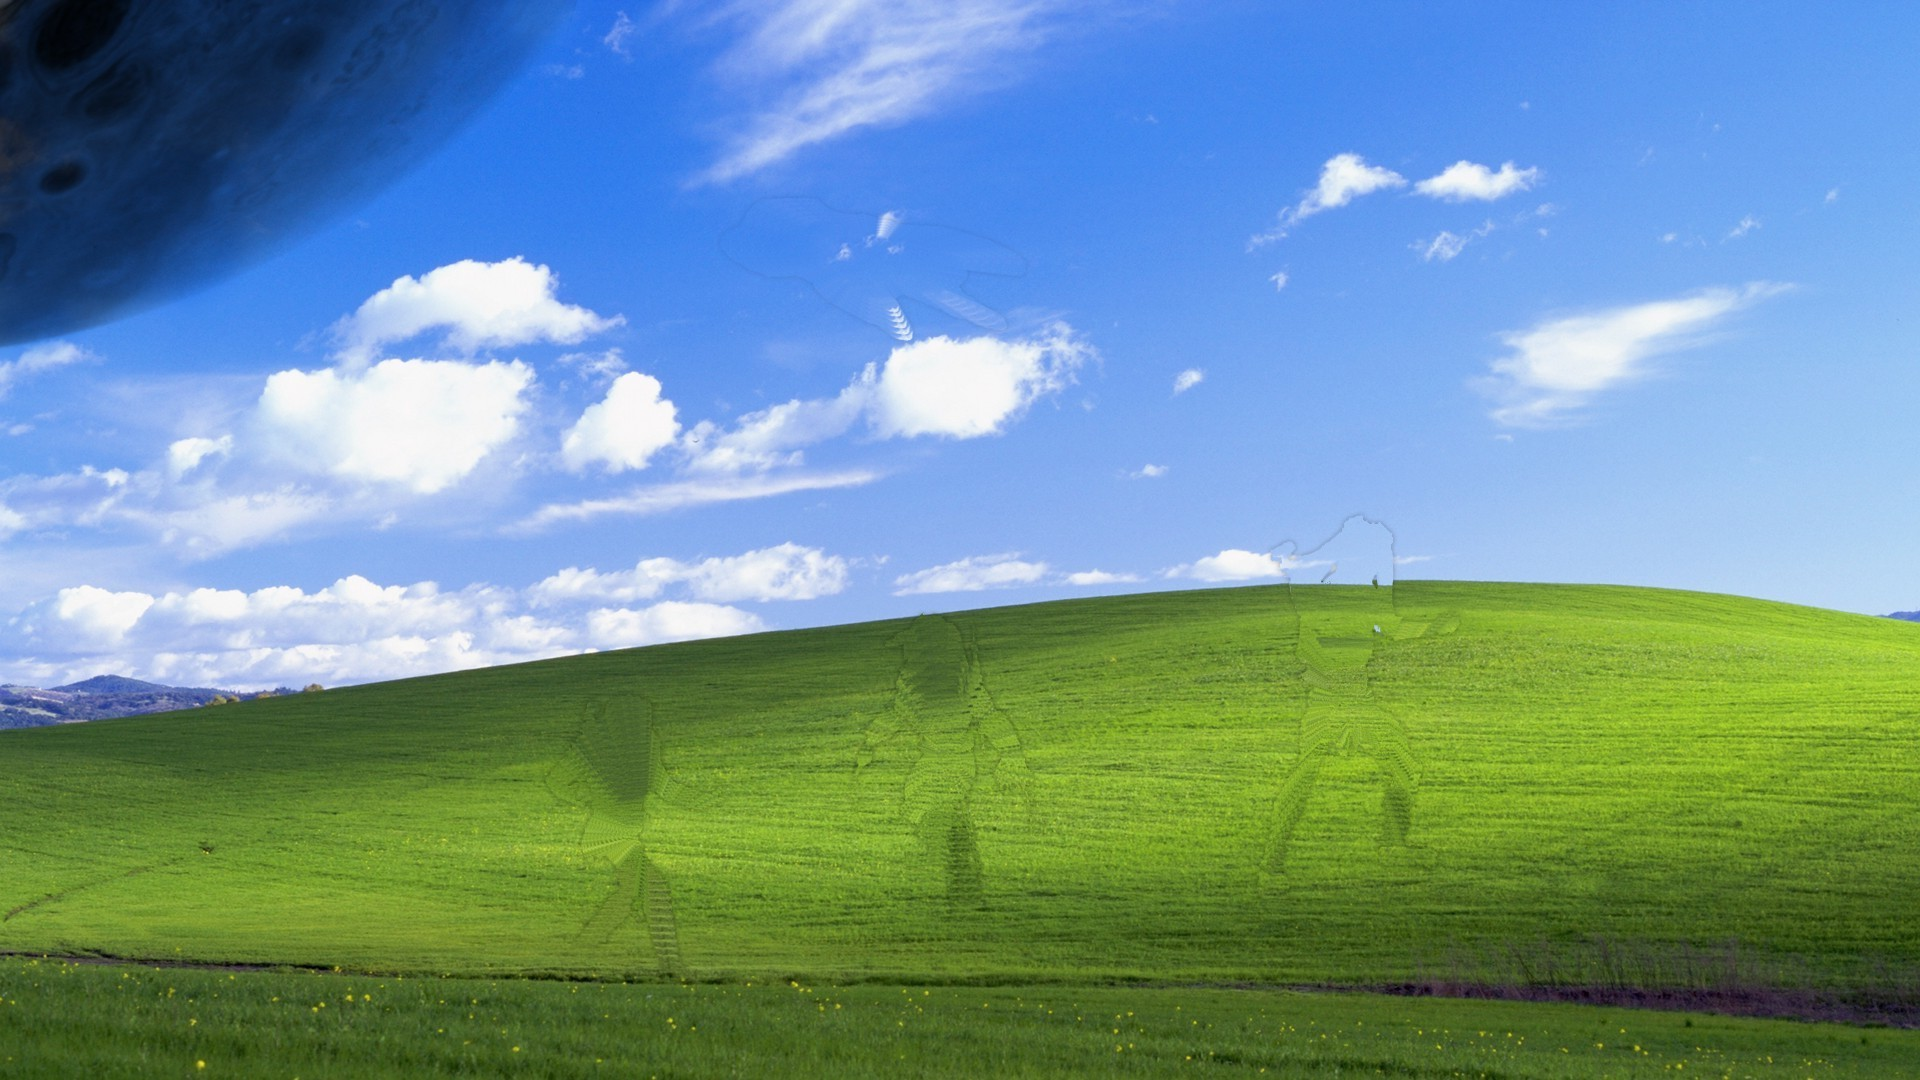 Windows Xp 4k Wallpaper Posted By John Cunningham